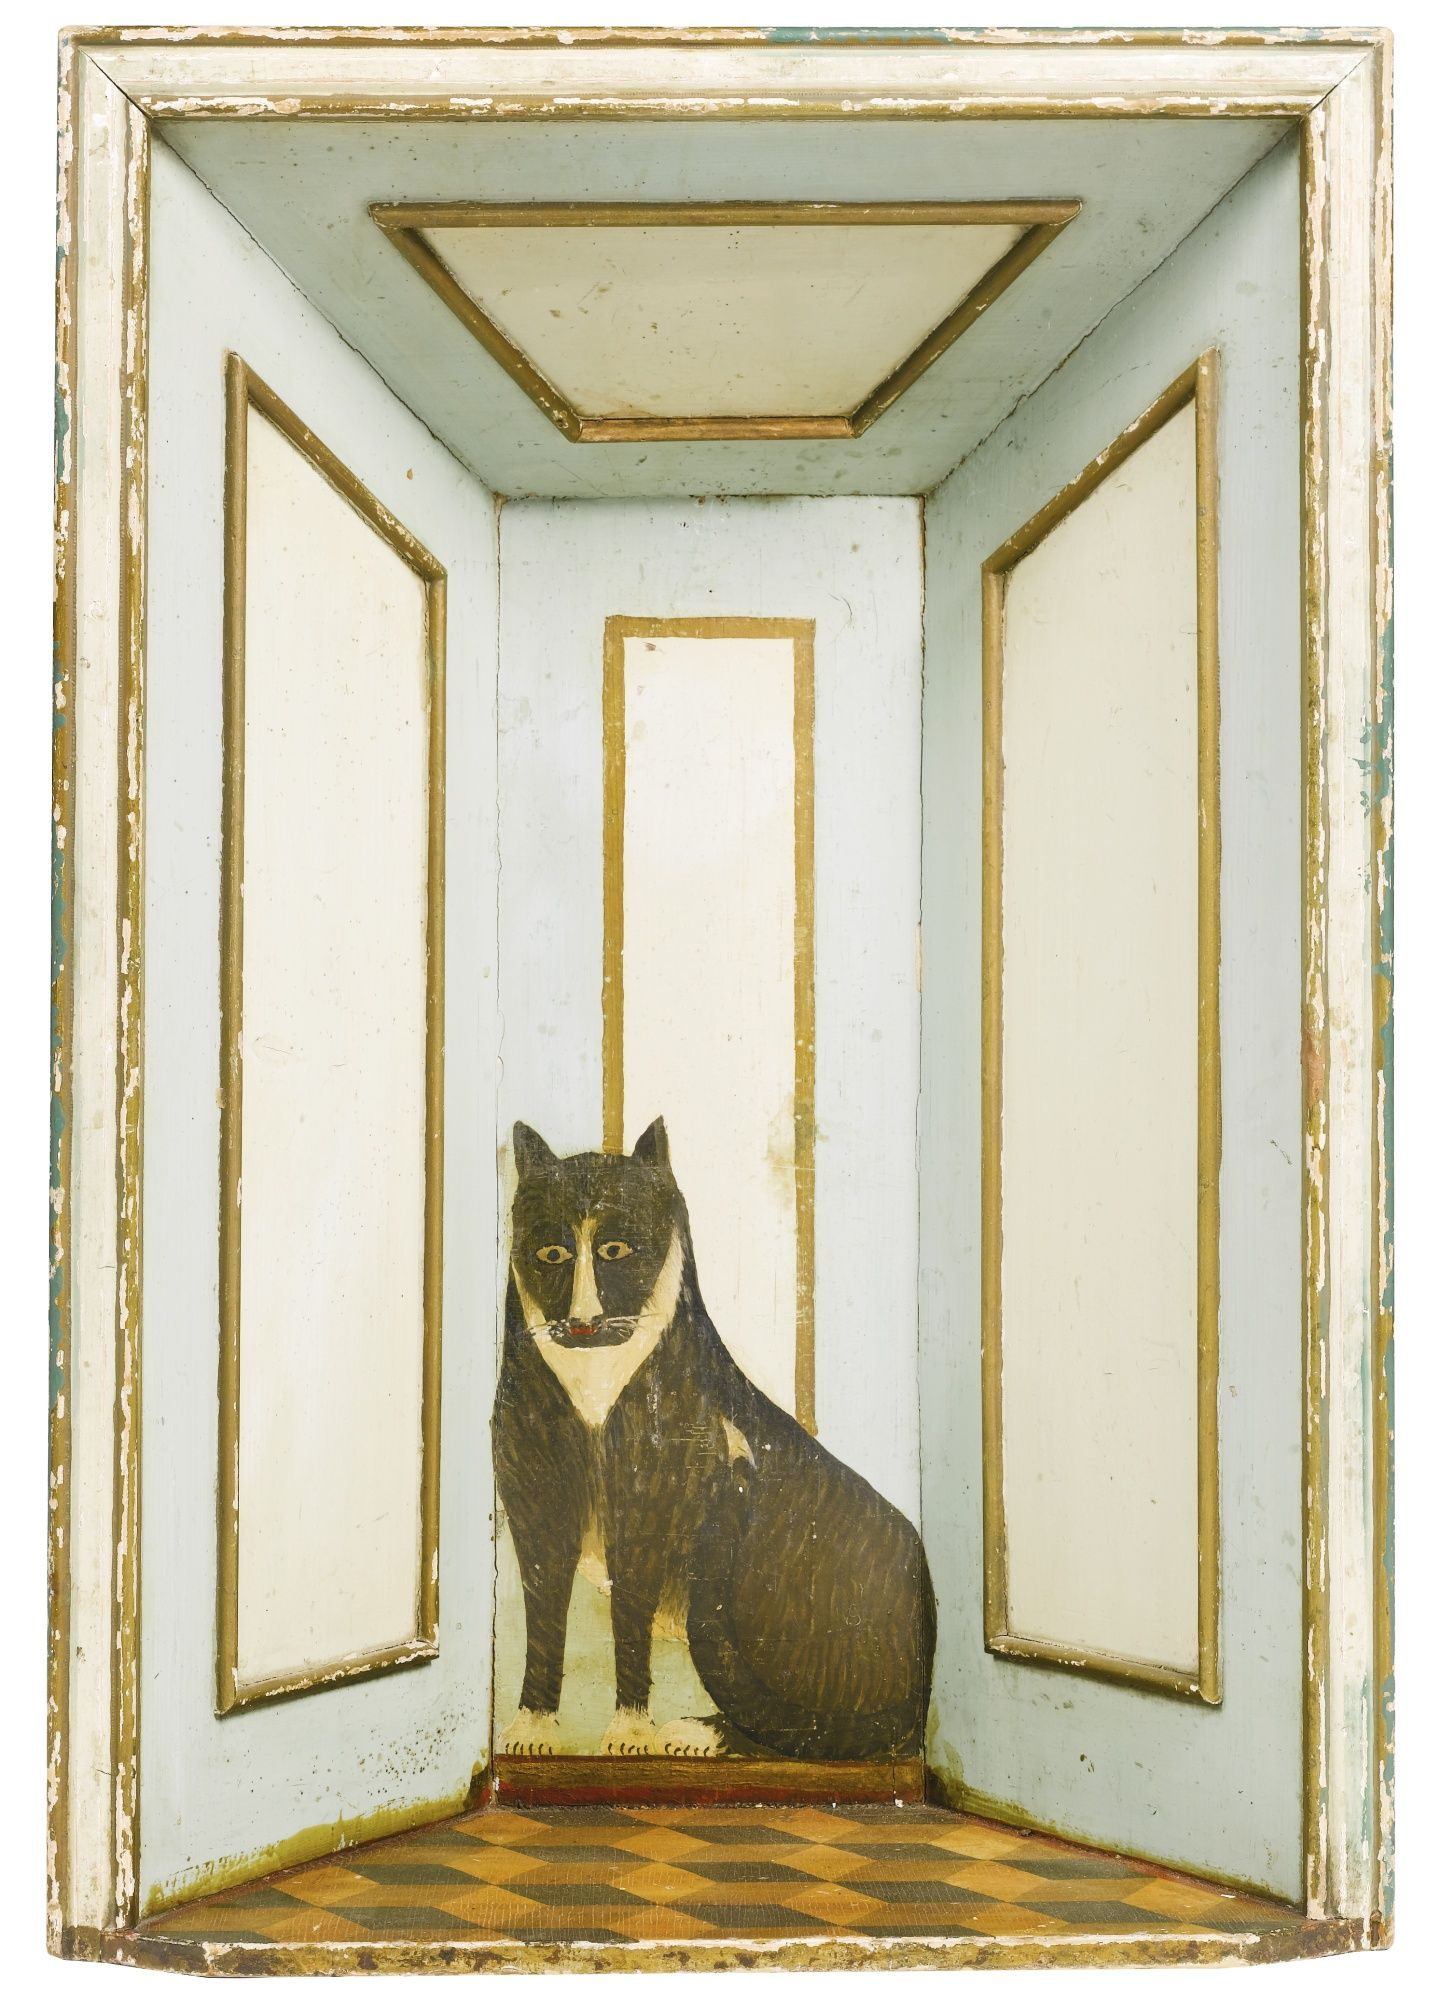 DUMMY BOARD CHIMNEYPIECE INSET - painted pine, a trompe l'oeil of a cat seated on a parquet floor within a panelled room, ca. 1900, England.